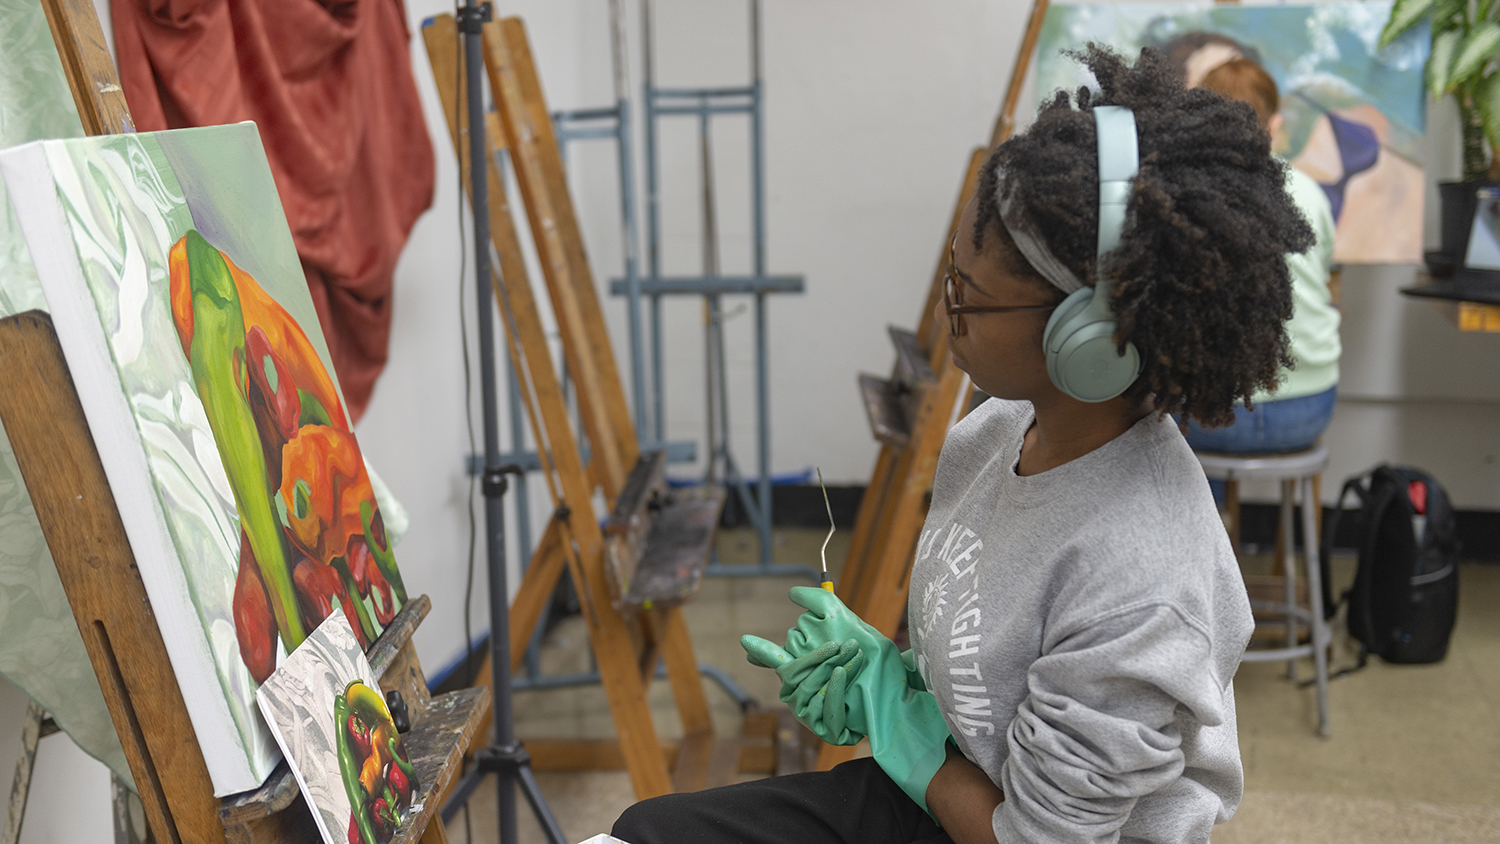 A student works on a painting in a studio.